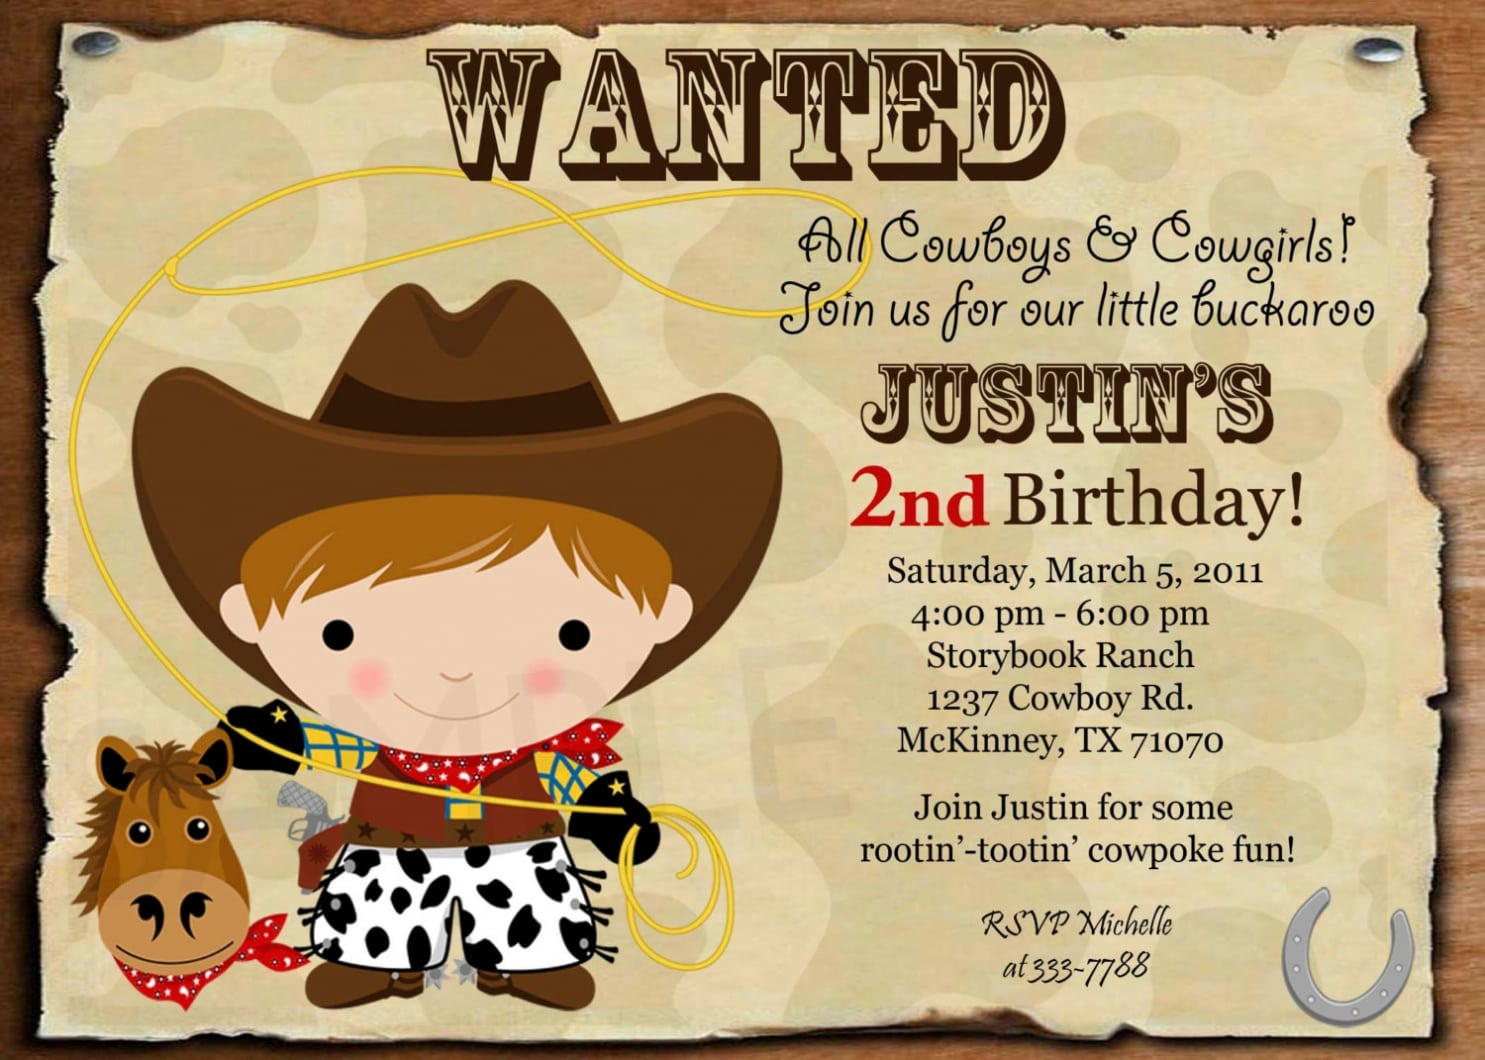 Cowboy Party Invitations Cowboy Party Invitations For Simple